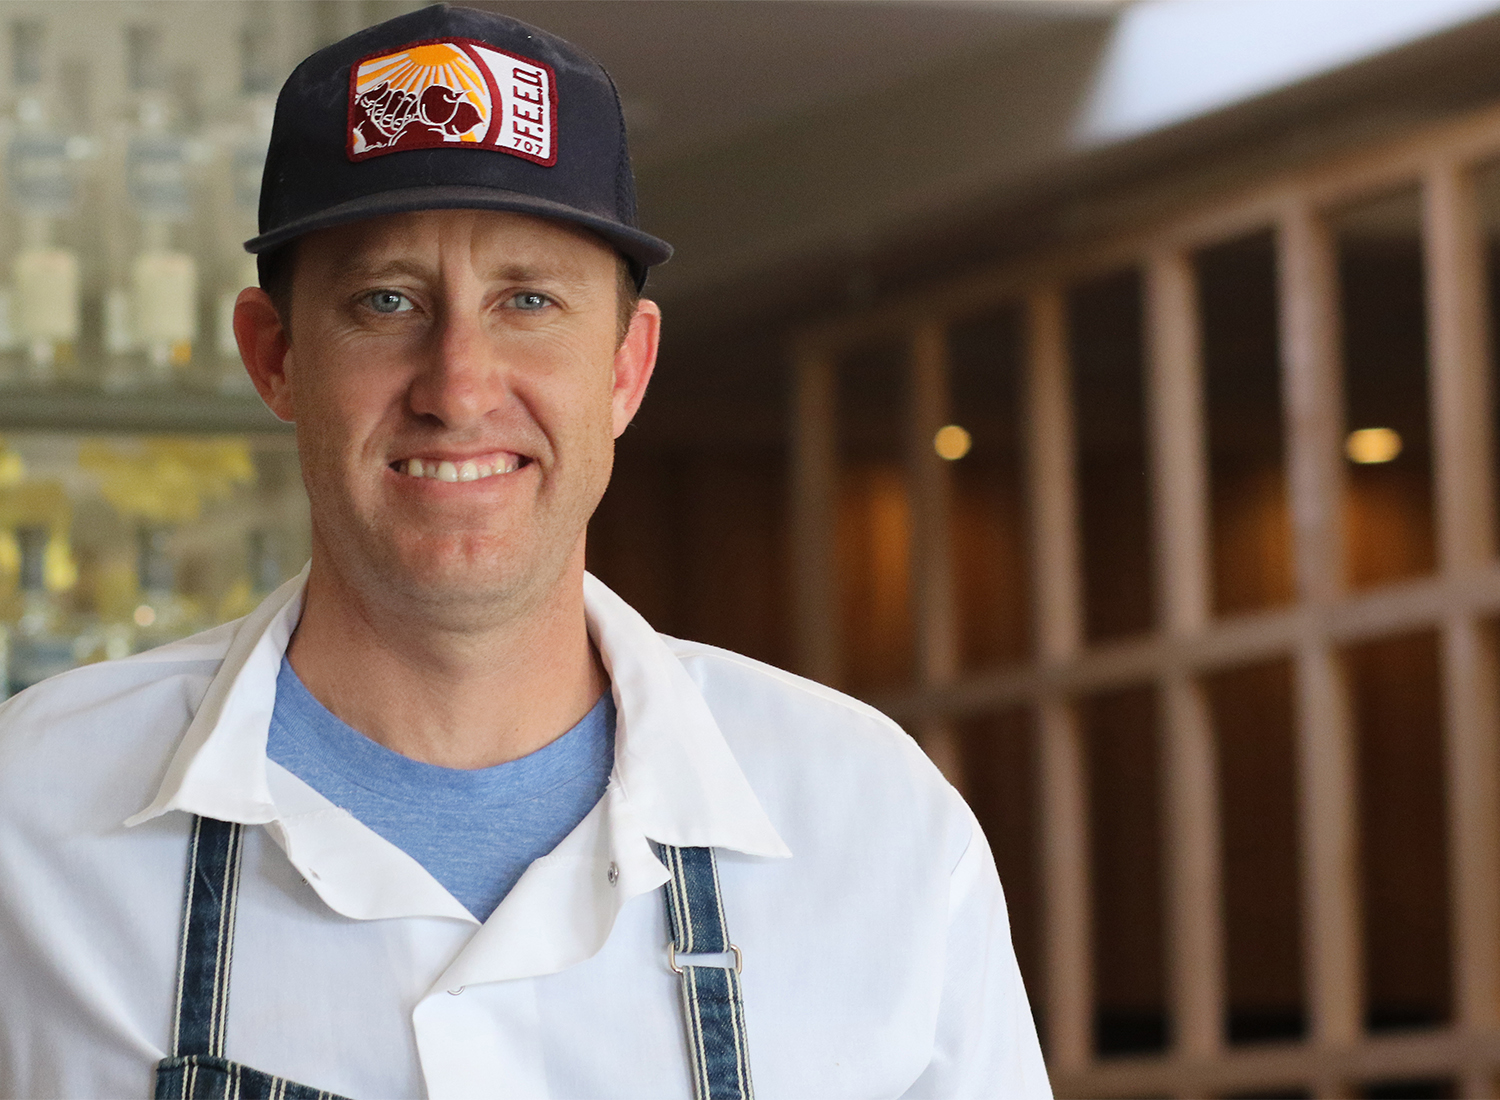 Chef Mike Mullins at Perch and Plow restaurant in Santa Rosa. Heather Irwin/PD